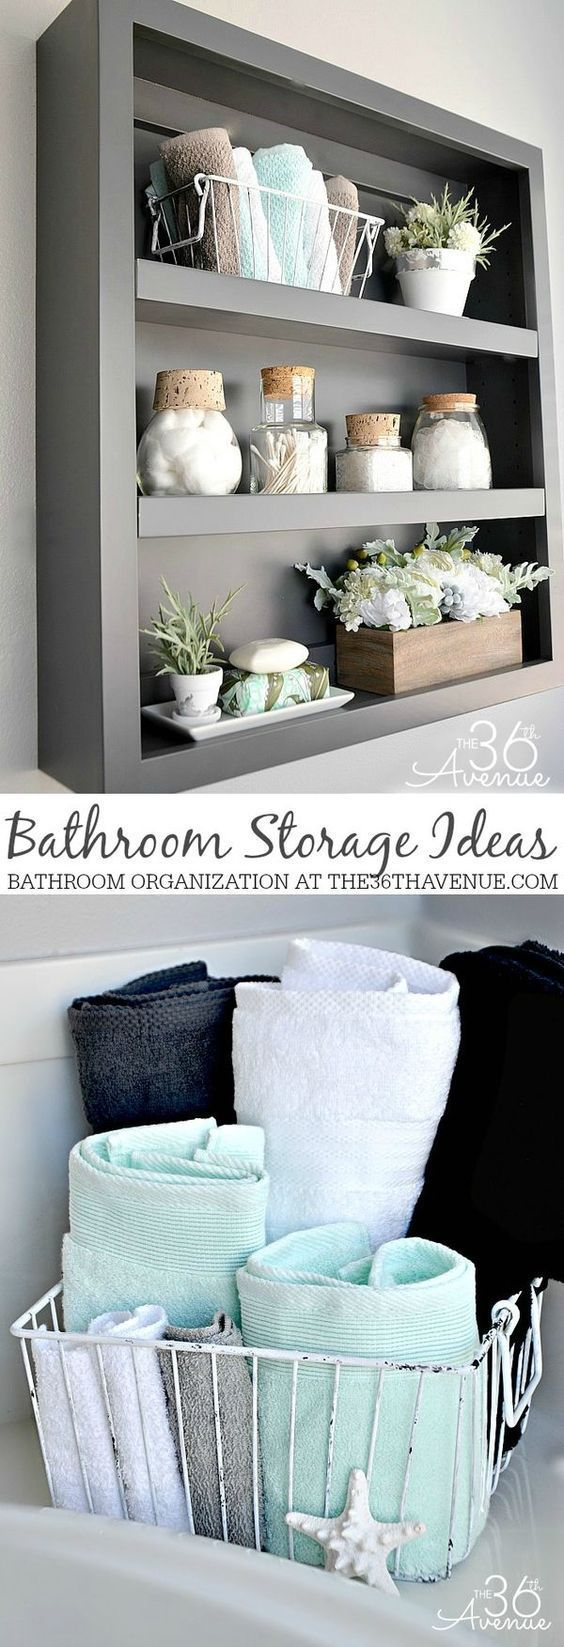 Small Bathroom Design Pinterest best 25+ small bathrooms decor ideas on pinterest | small bathroom